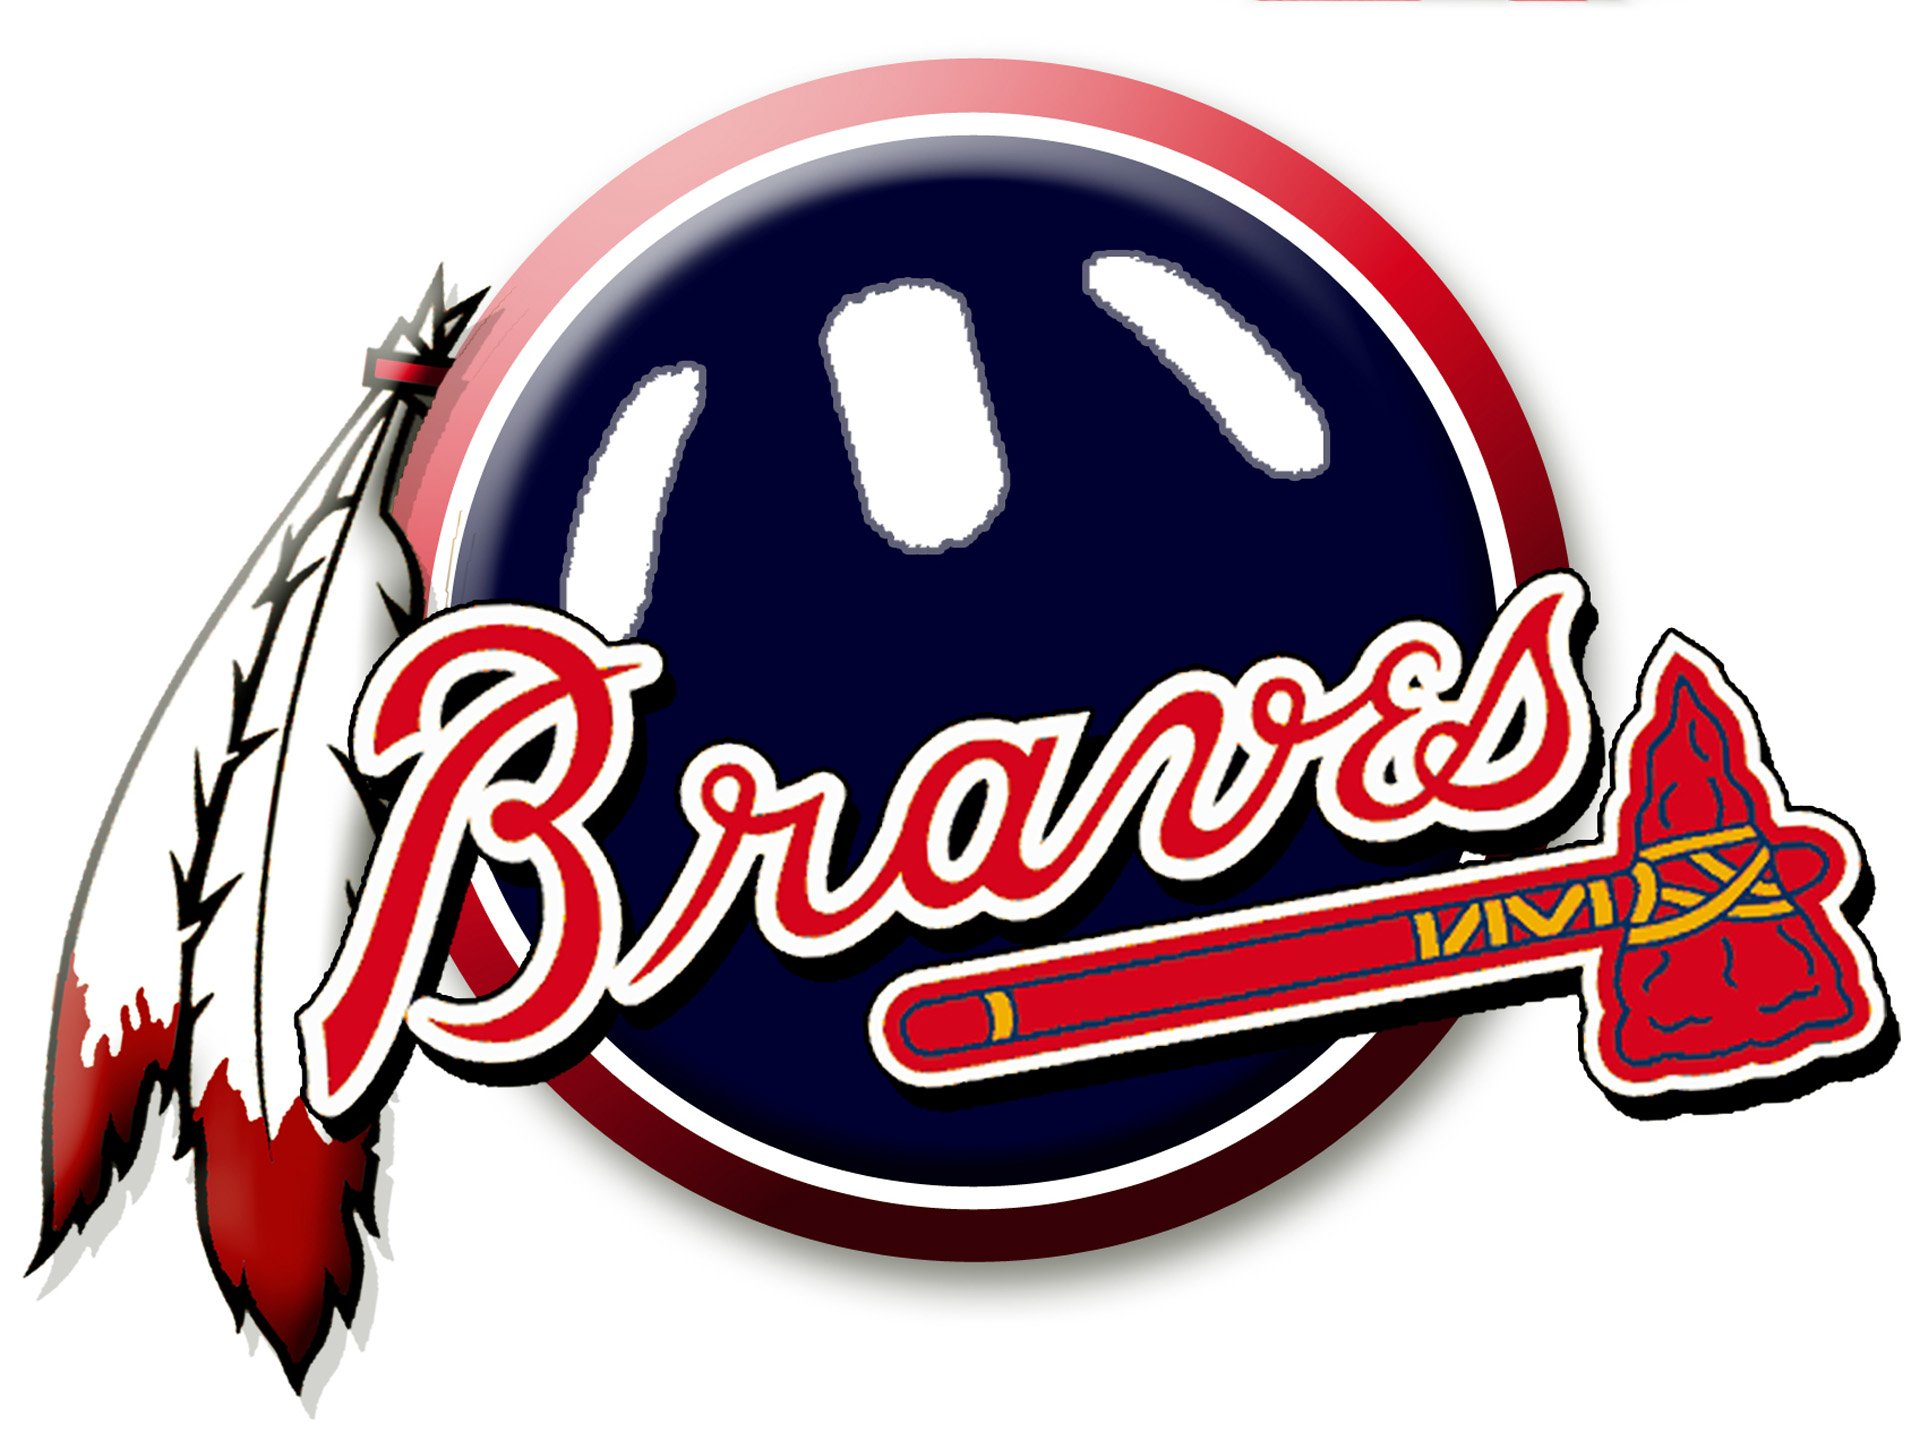 ATLANTA BRAVES baseball mlb f wallpaper background 1920x1440